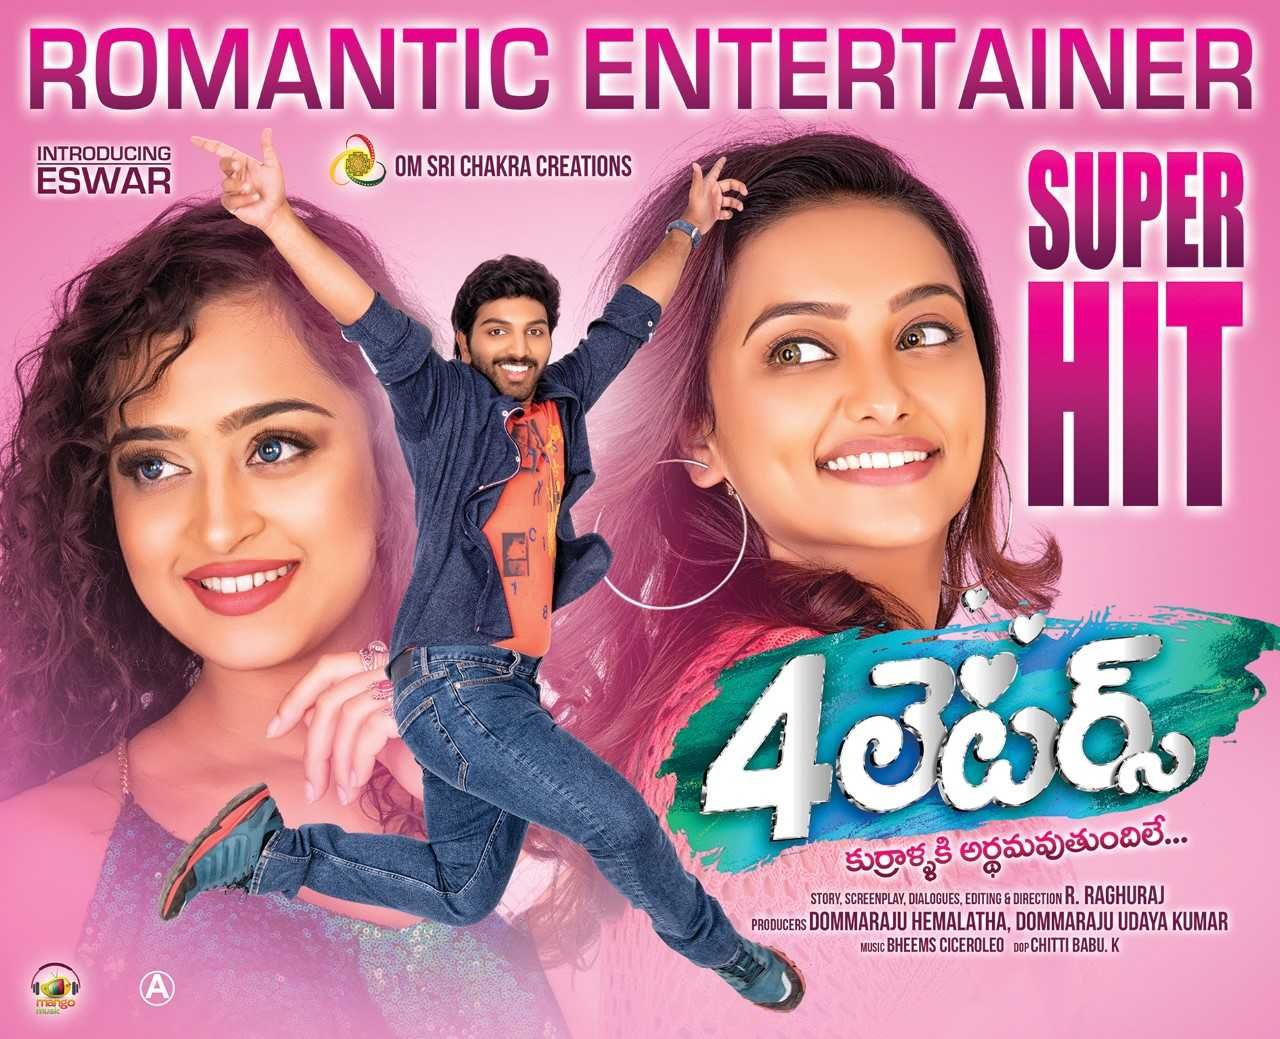 4 Letters Movie Super Hit Posters